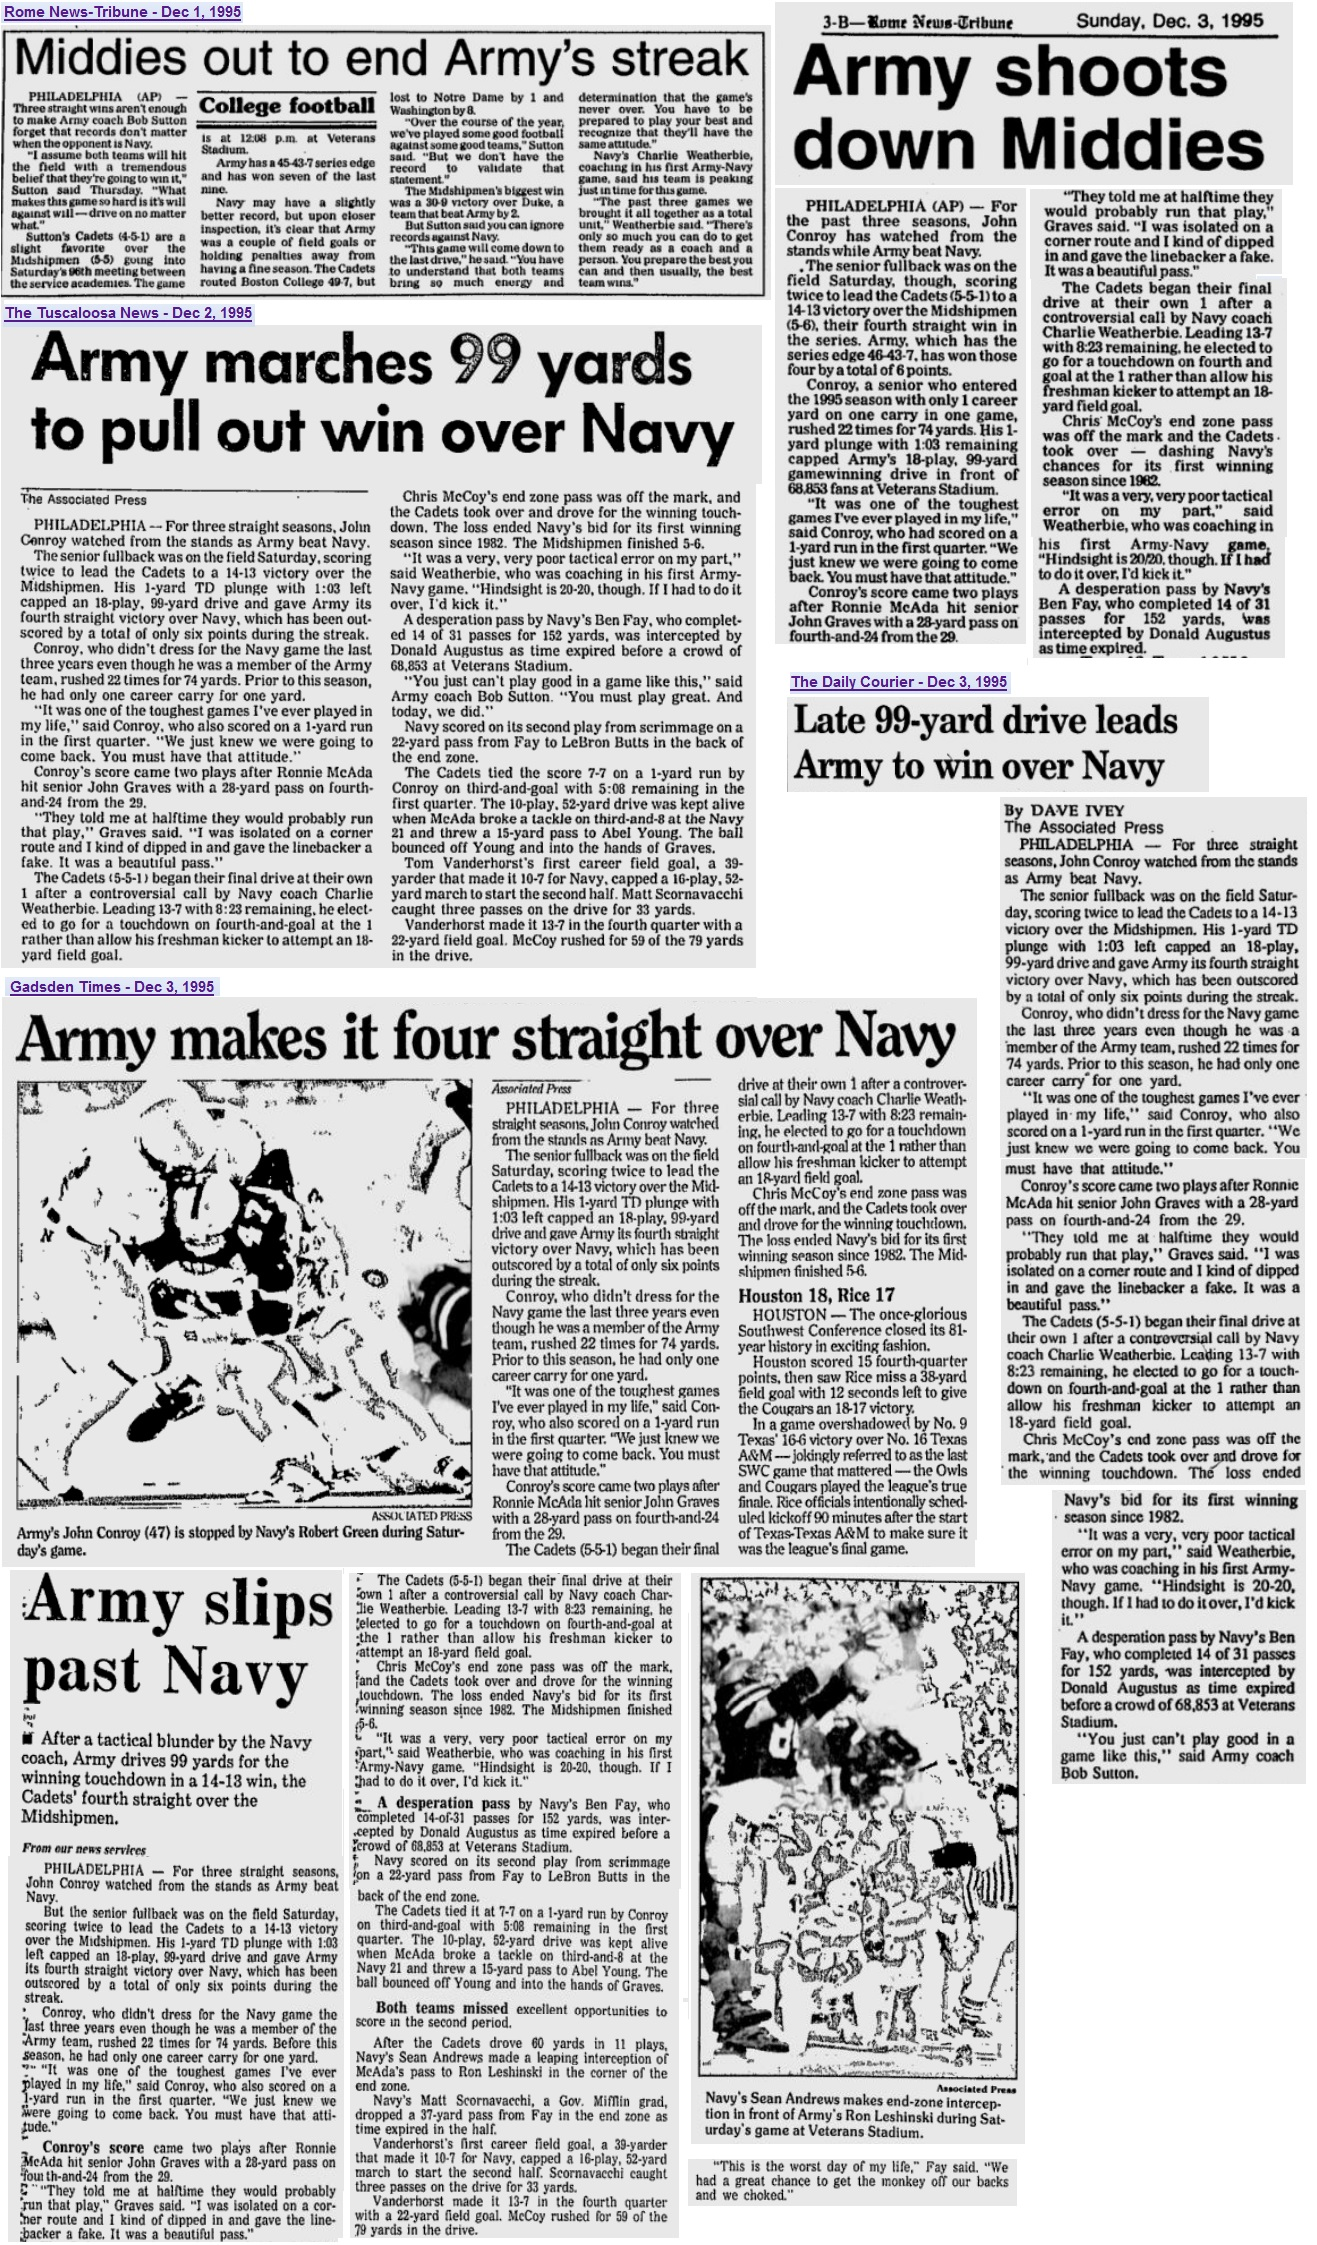 armyfb_1995_vsnavy_various_dec1995